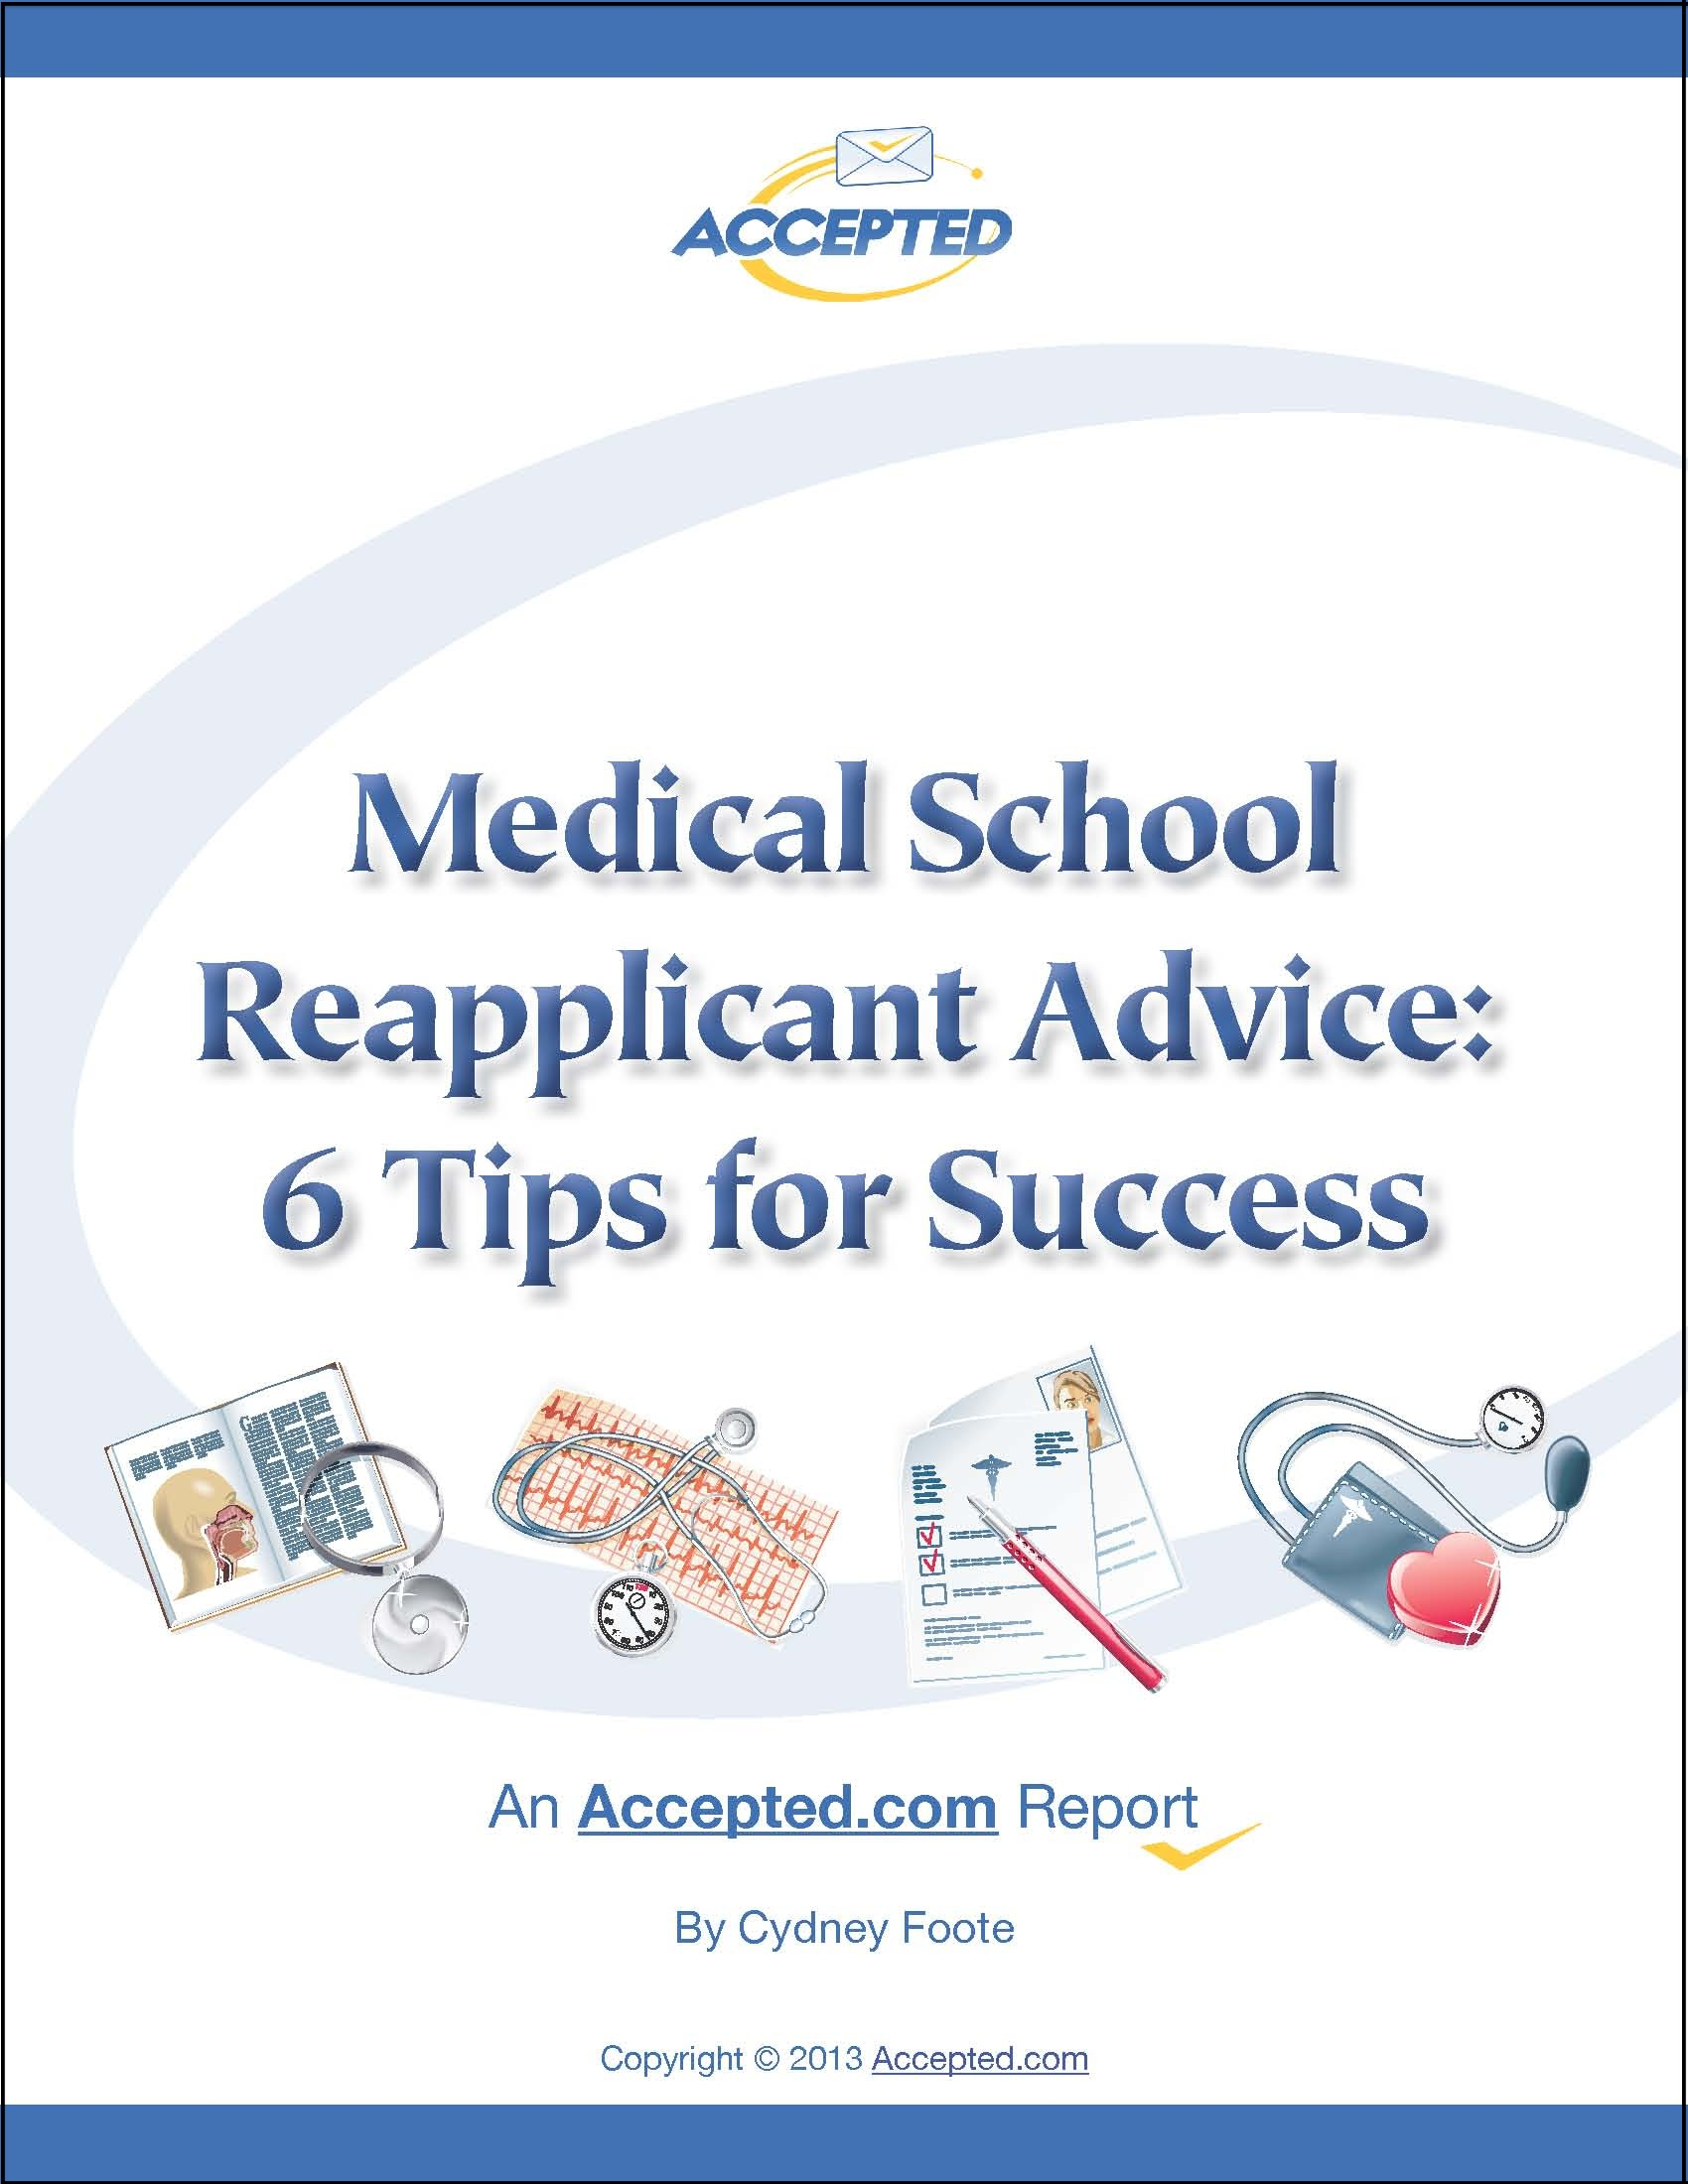 Med School Reapplicant Advice